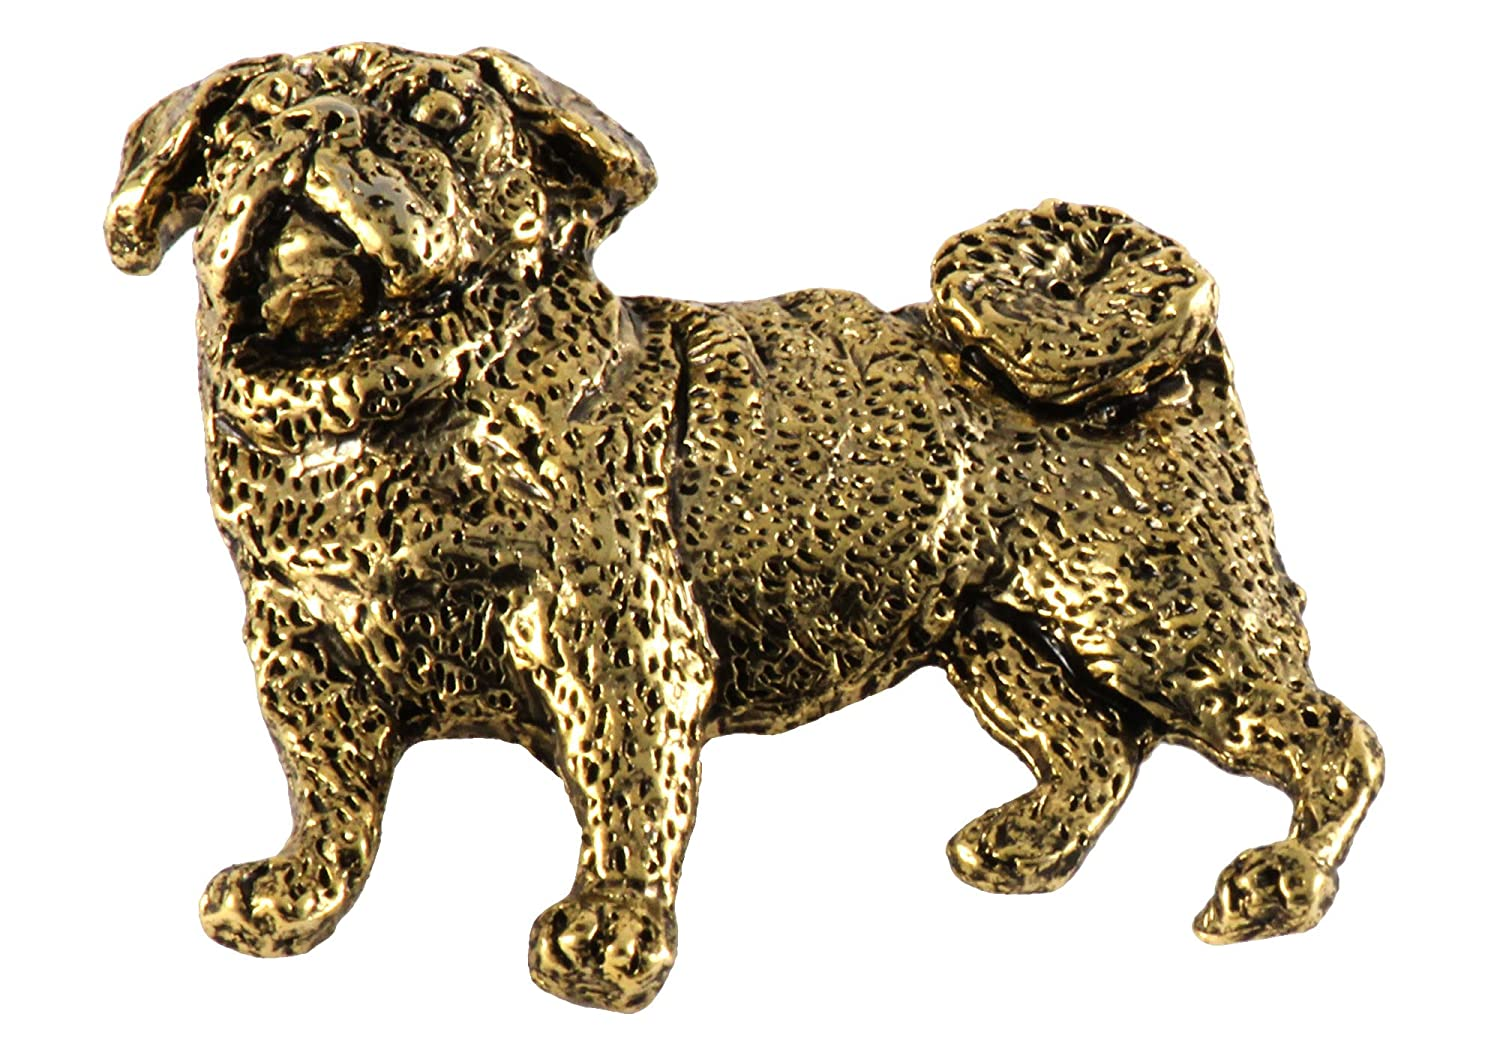 Creative Pewter Designs, Pewter Full Body Pug Handcrafted Dog Lapel Pin Brooch, D448F 24k Gold Plated DG448